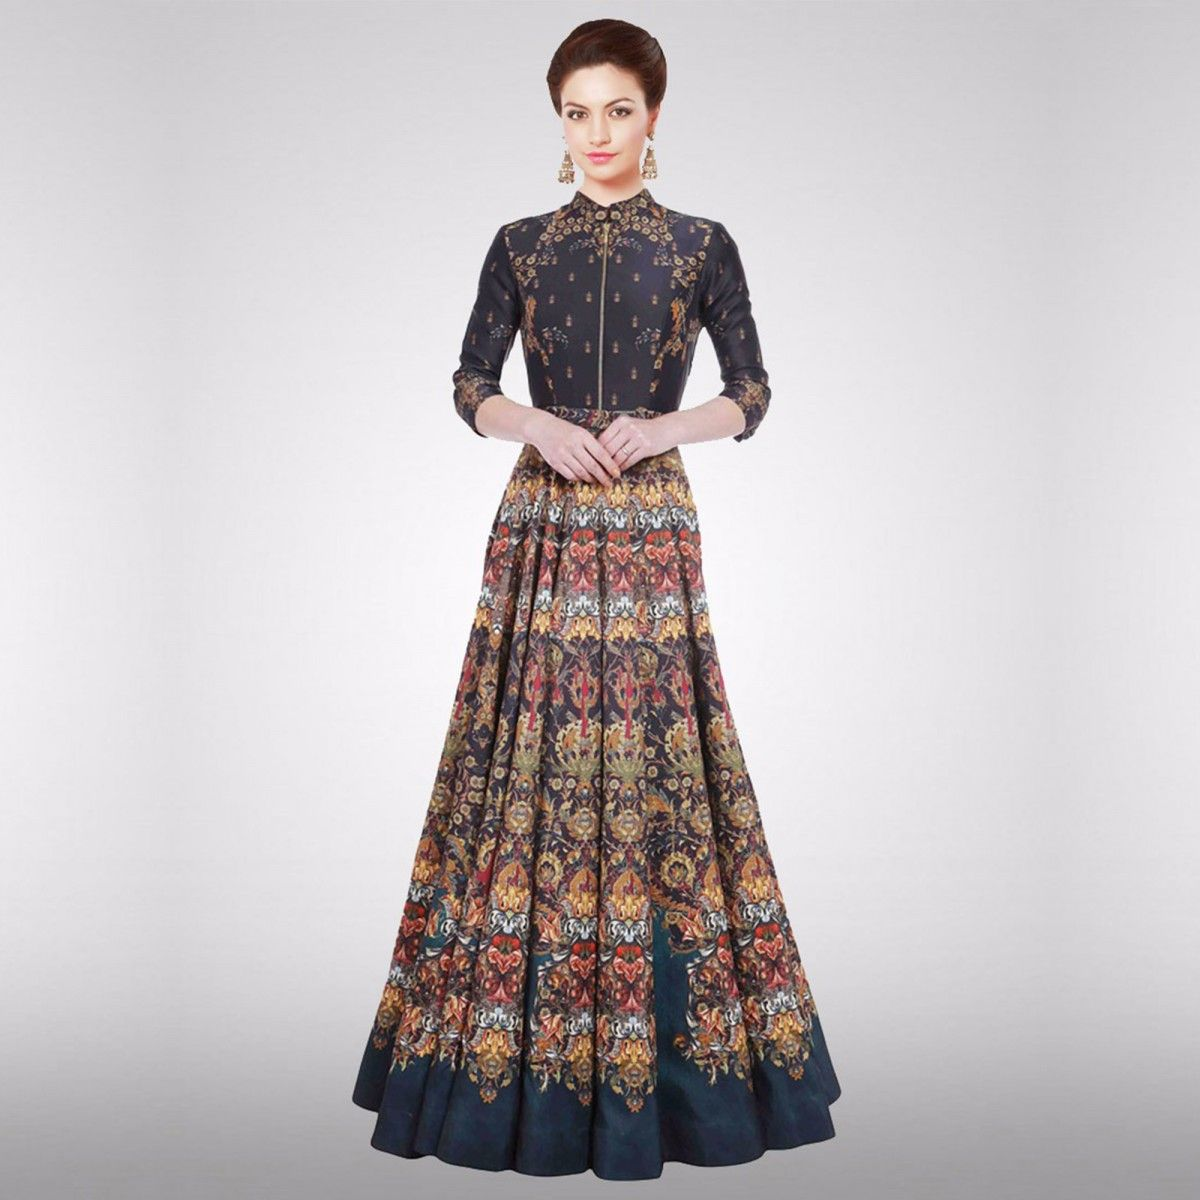 Buy Multi Color Digital Printed Gown for womens online India, Best Prices,  Reviews -